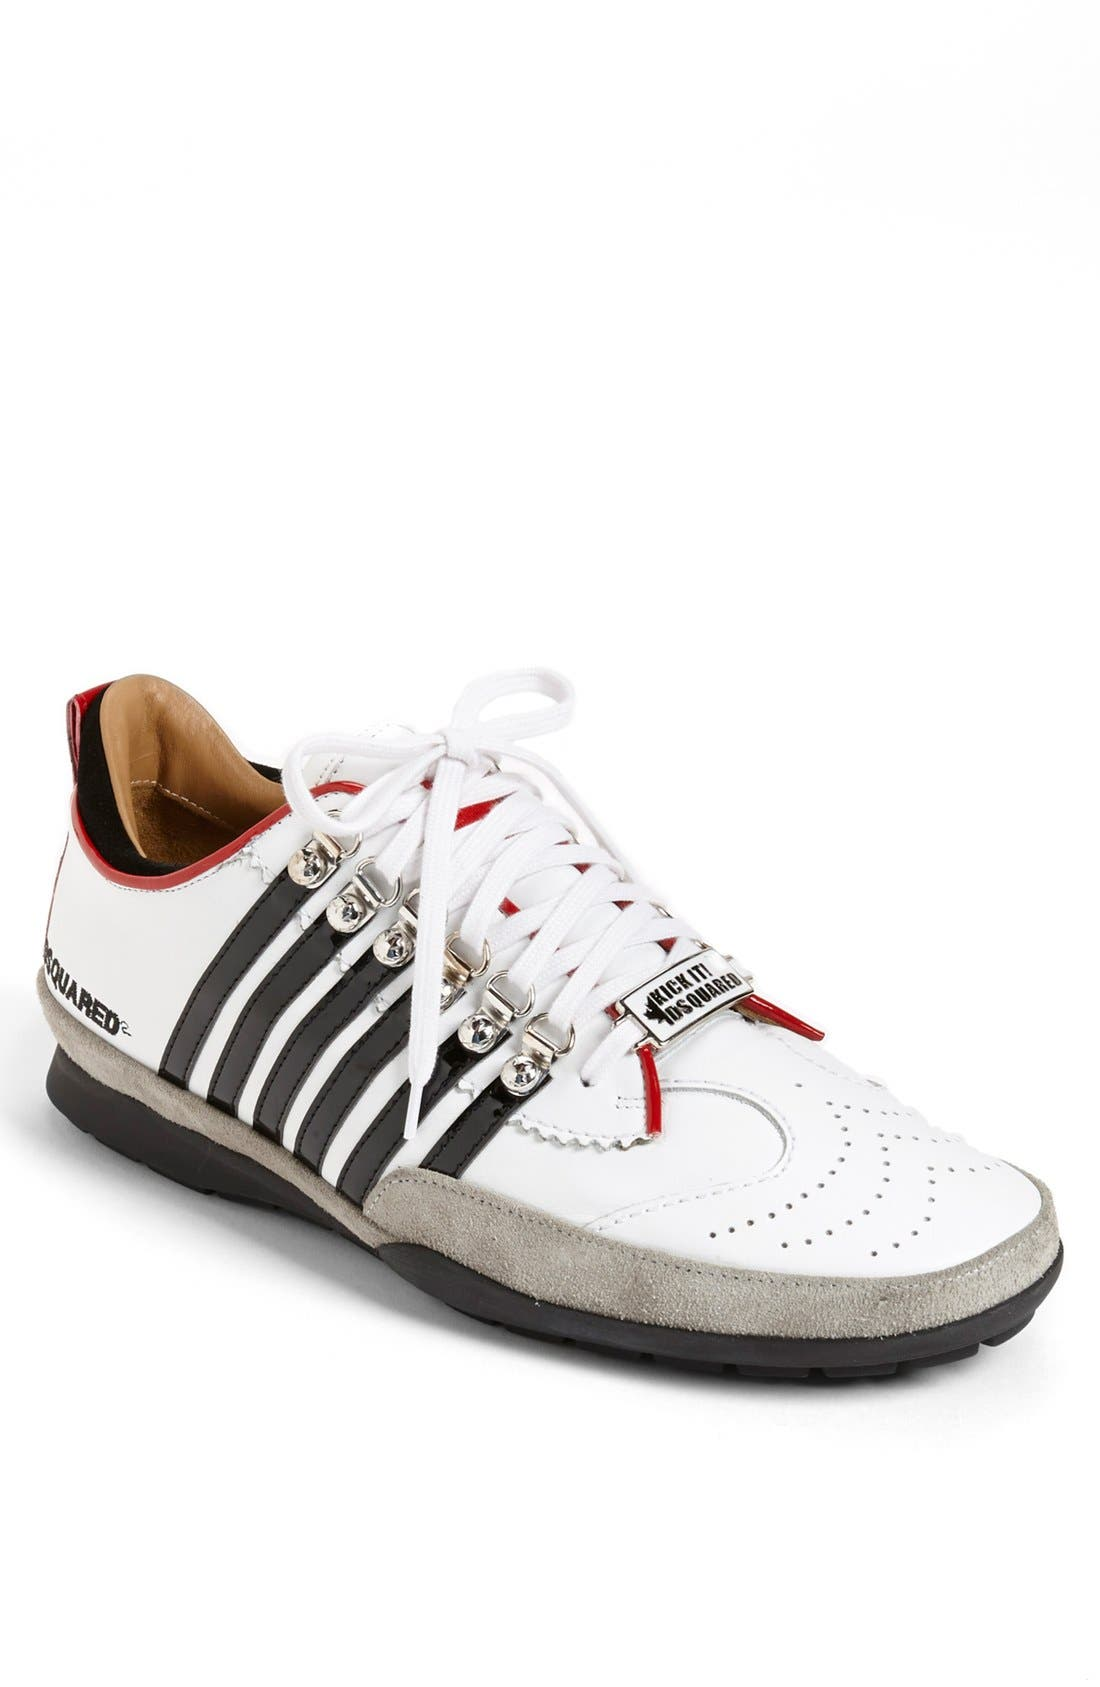 Main Image - Dsquared2 '251' Sneaker